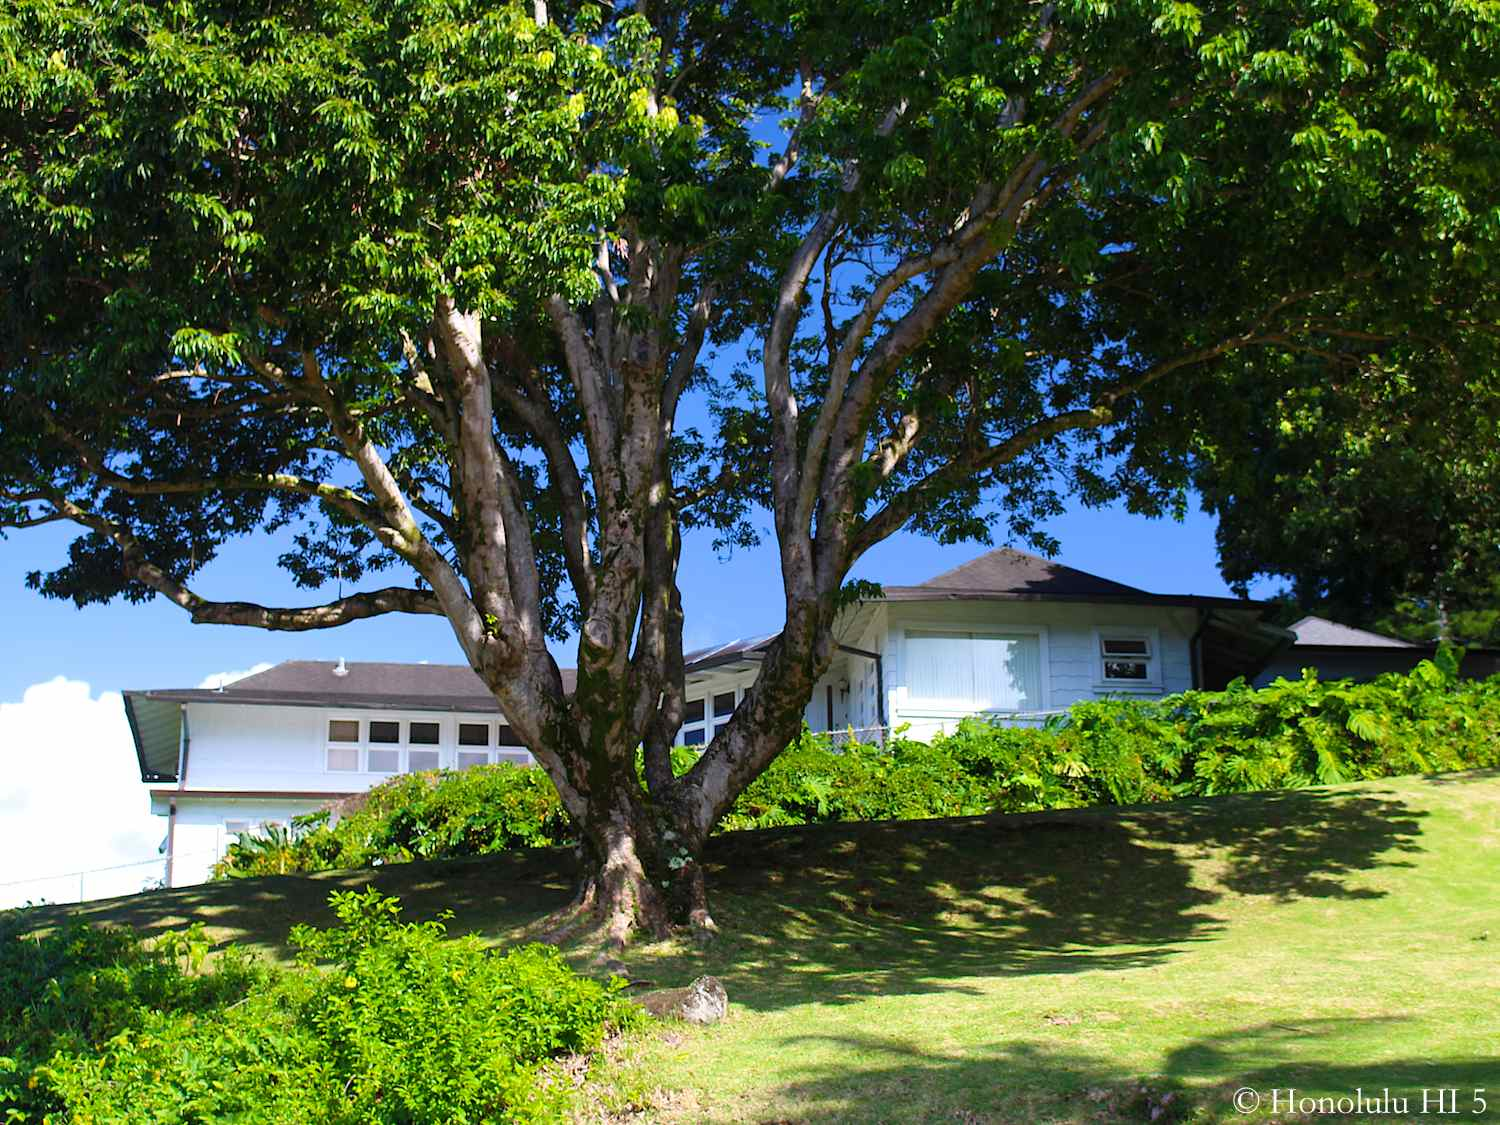 Dowsett Home in Honolulu Set On a Slope Behind  Large Tree